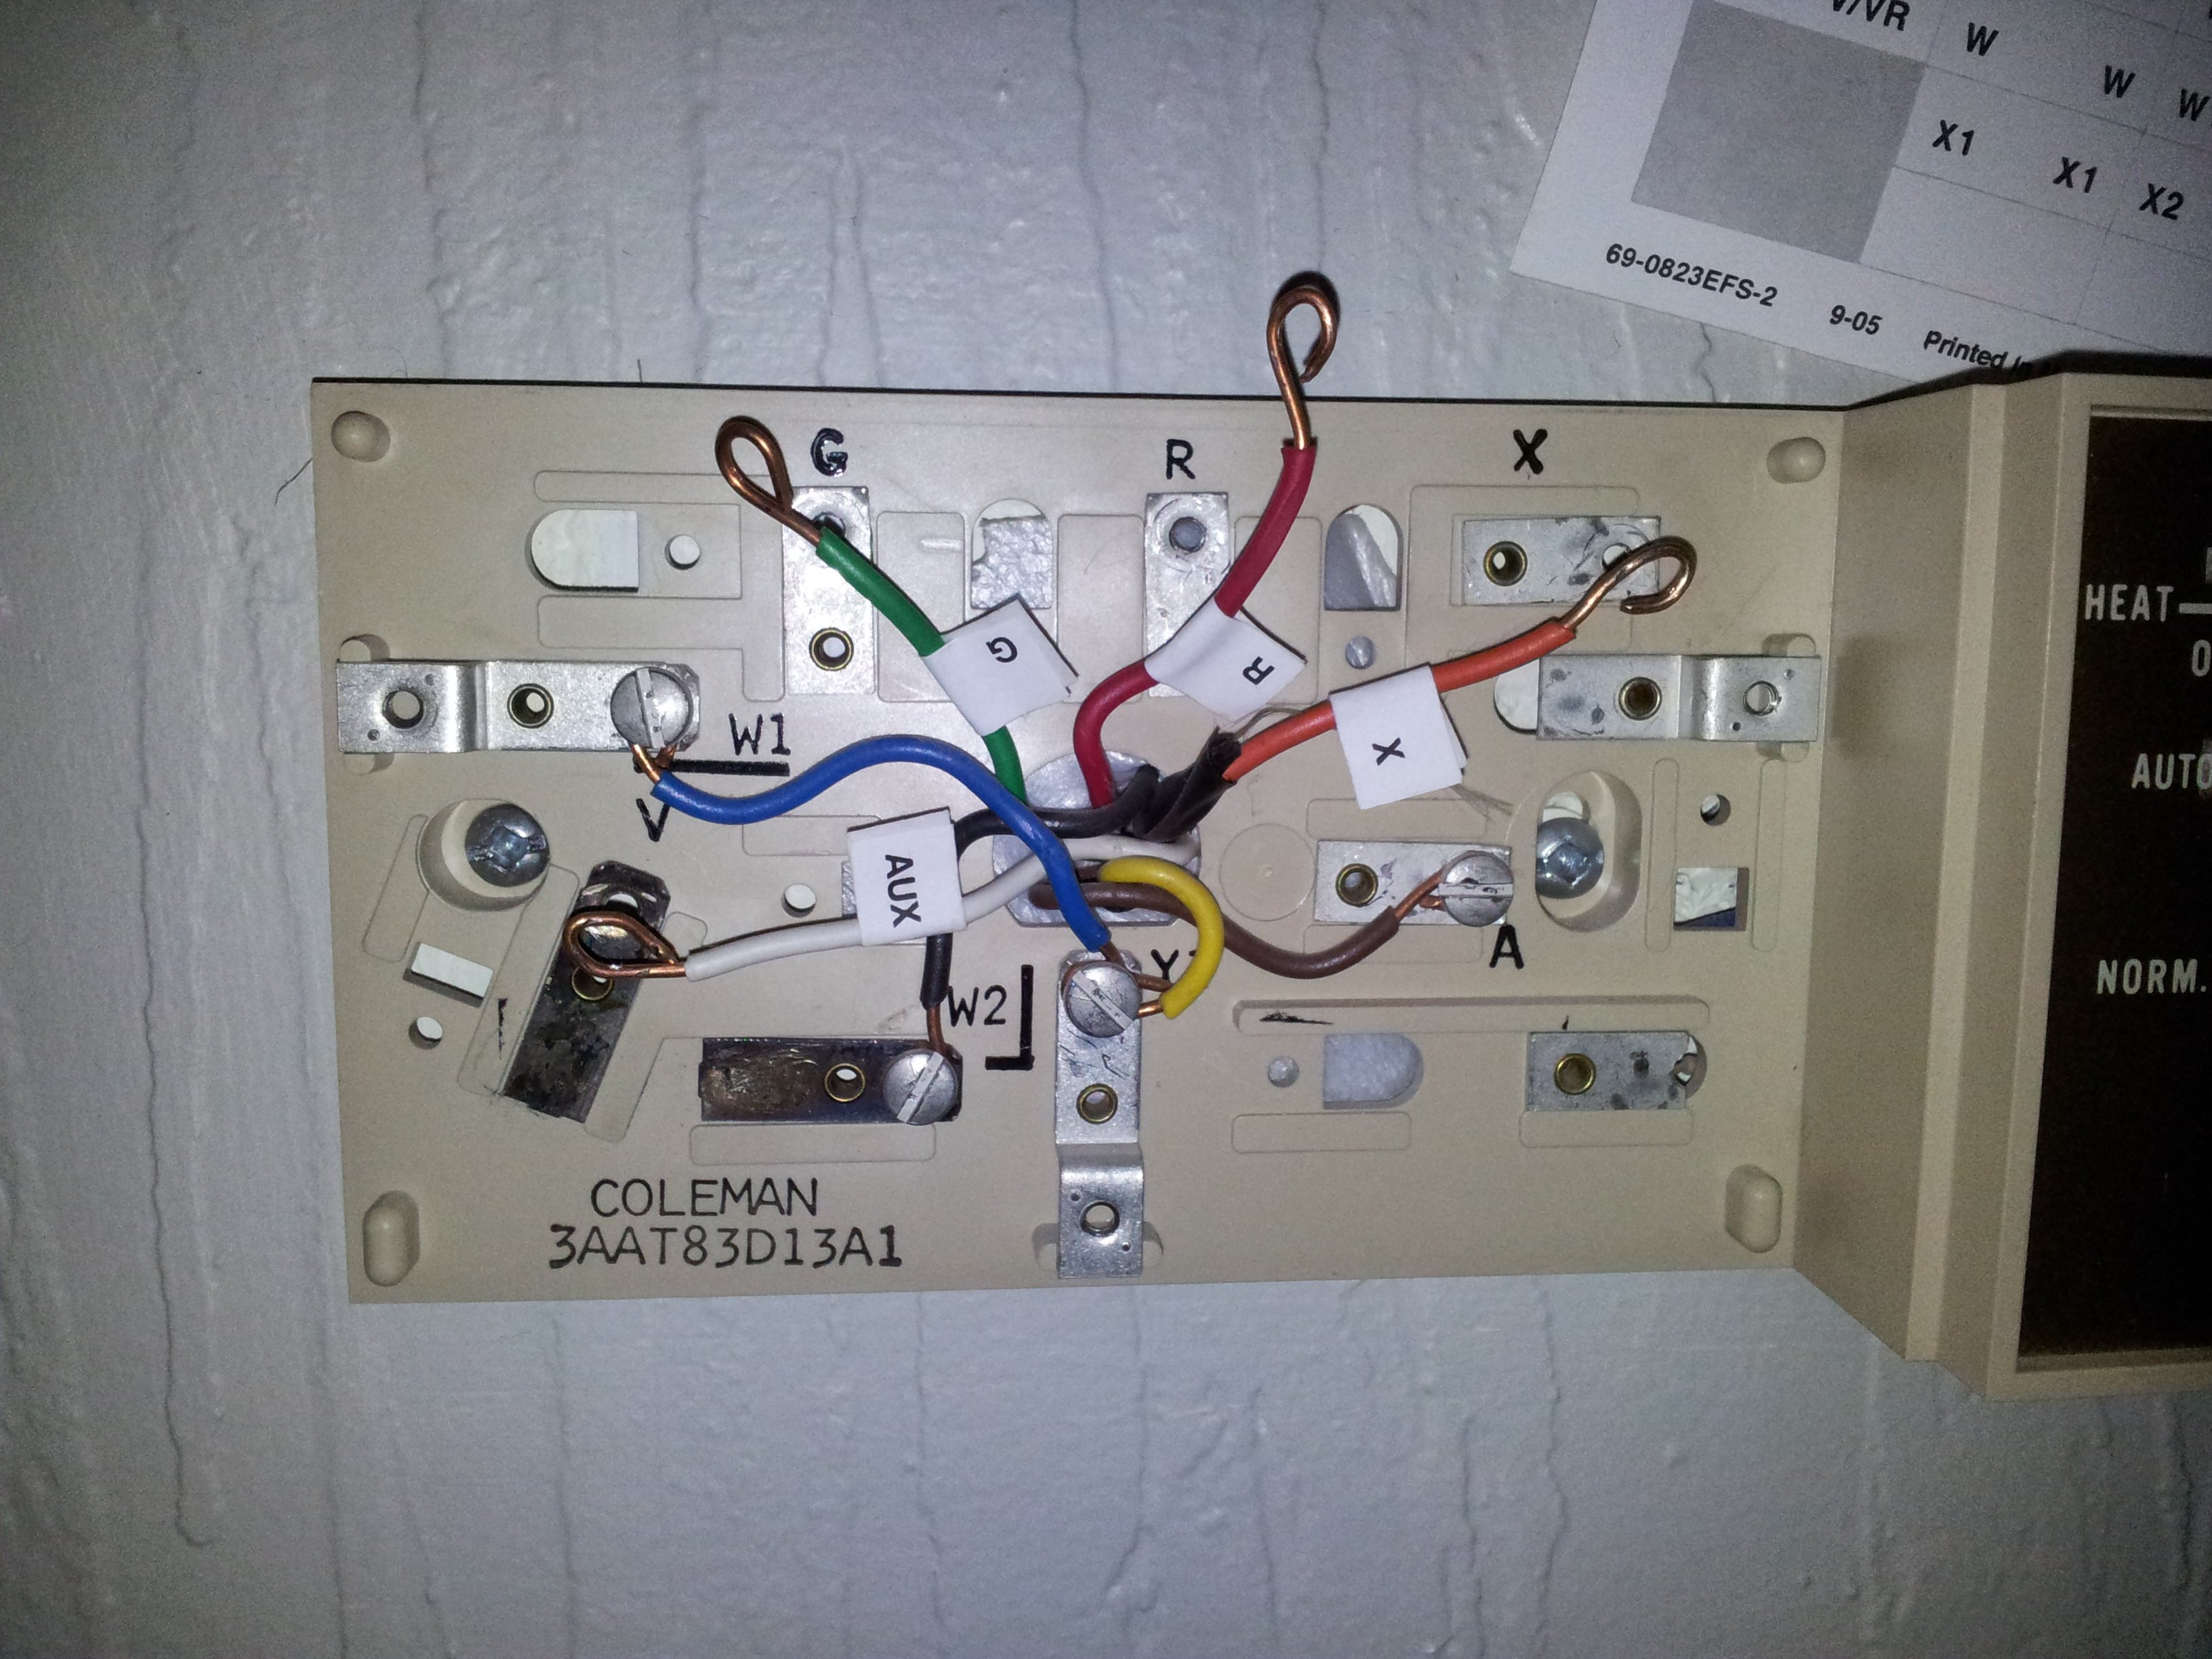 I am trying to install a Honeywell RTH8500 Programmable tstat from Honeywell Rth Wiring Diagram on honeywell thermostat 5 wire, honeywell v8043e wiring, honeywell wiring wizard, honeywell aquastat diagram, honeywell relay wiring, honeywell personal fans, honeywell wiring your home, honeywell gas fireplace, honeywell parts, honeywell power head, honeywell heater system, honeywell wiring guide, honeywell thermostat blue wire, honeywell thermostat wiring, honeywell gas valves, honeywell thermostat diagram, honeywell zone valve wiring, honeywell transformer wiring, honeywell installation manual, honeywell schematic diagram,